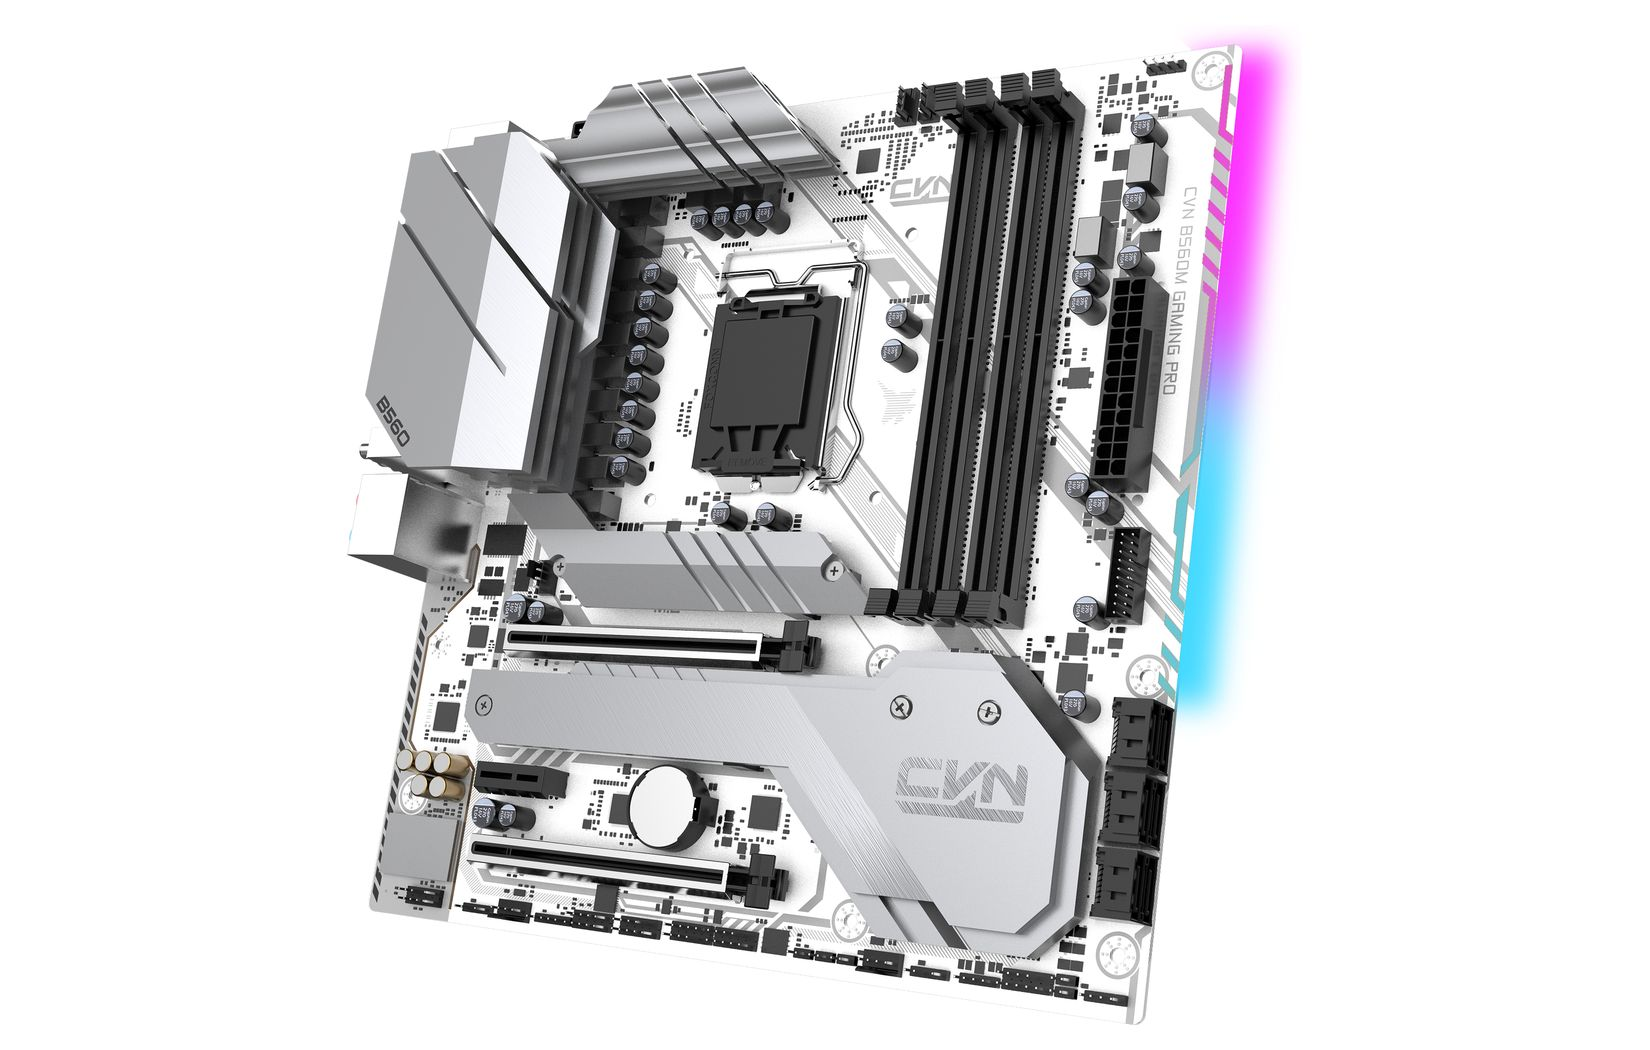 COLORFUL Introduces iGame Z590 Vulcan W and CVN B560M GAMING FROZEN Motherboards – VideoCardz.com